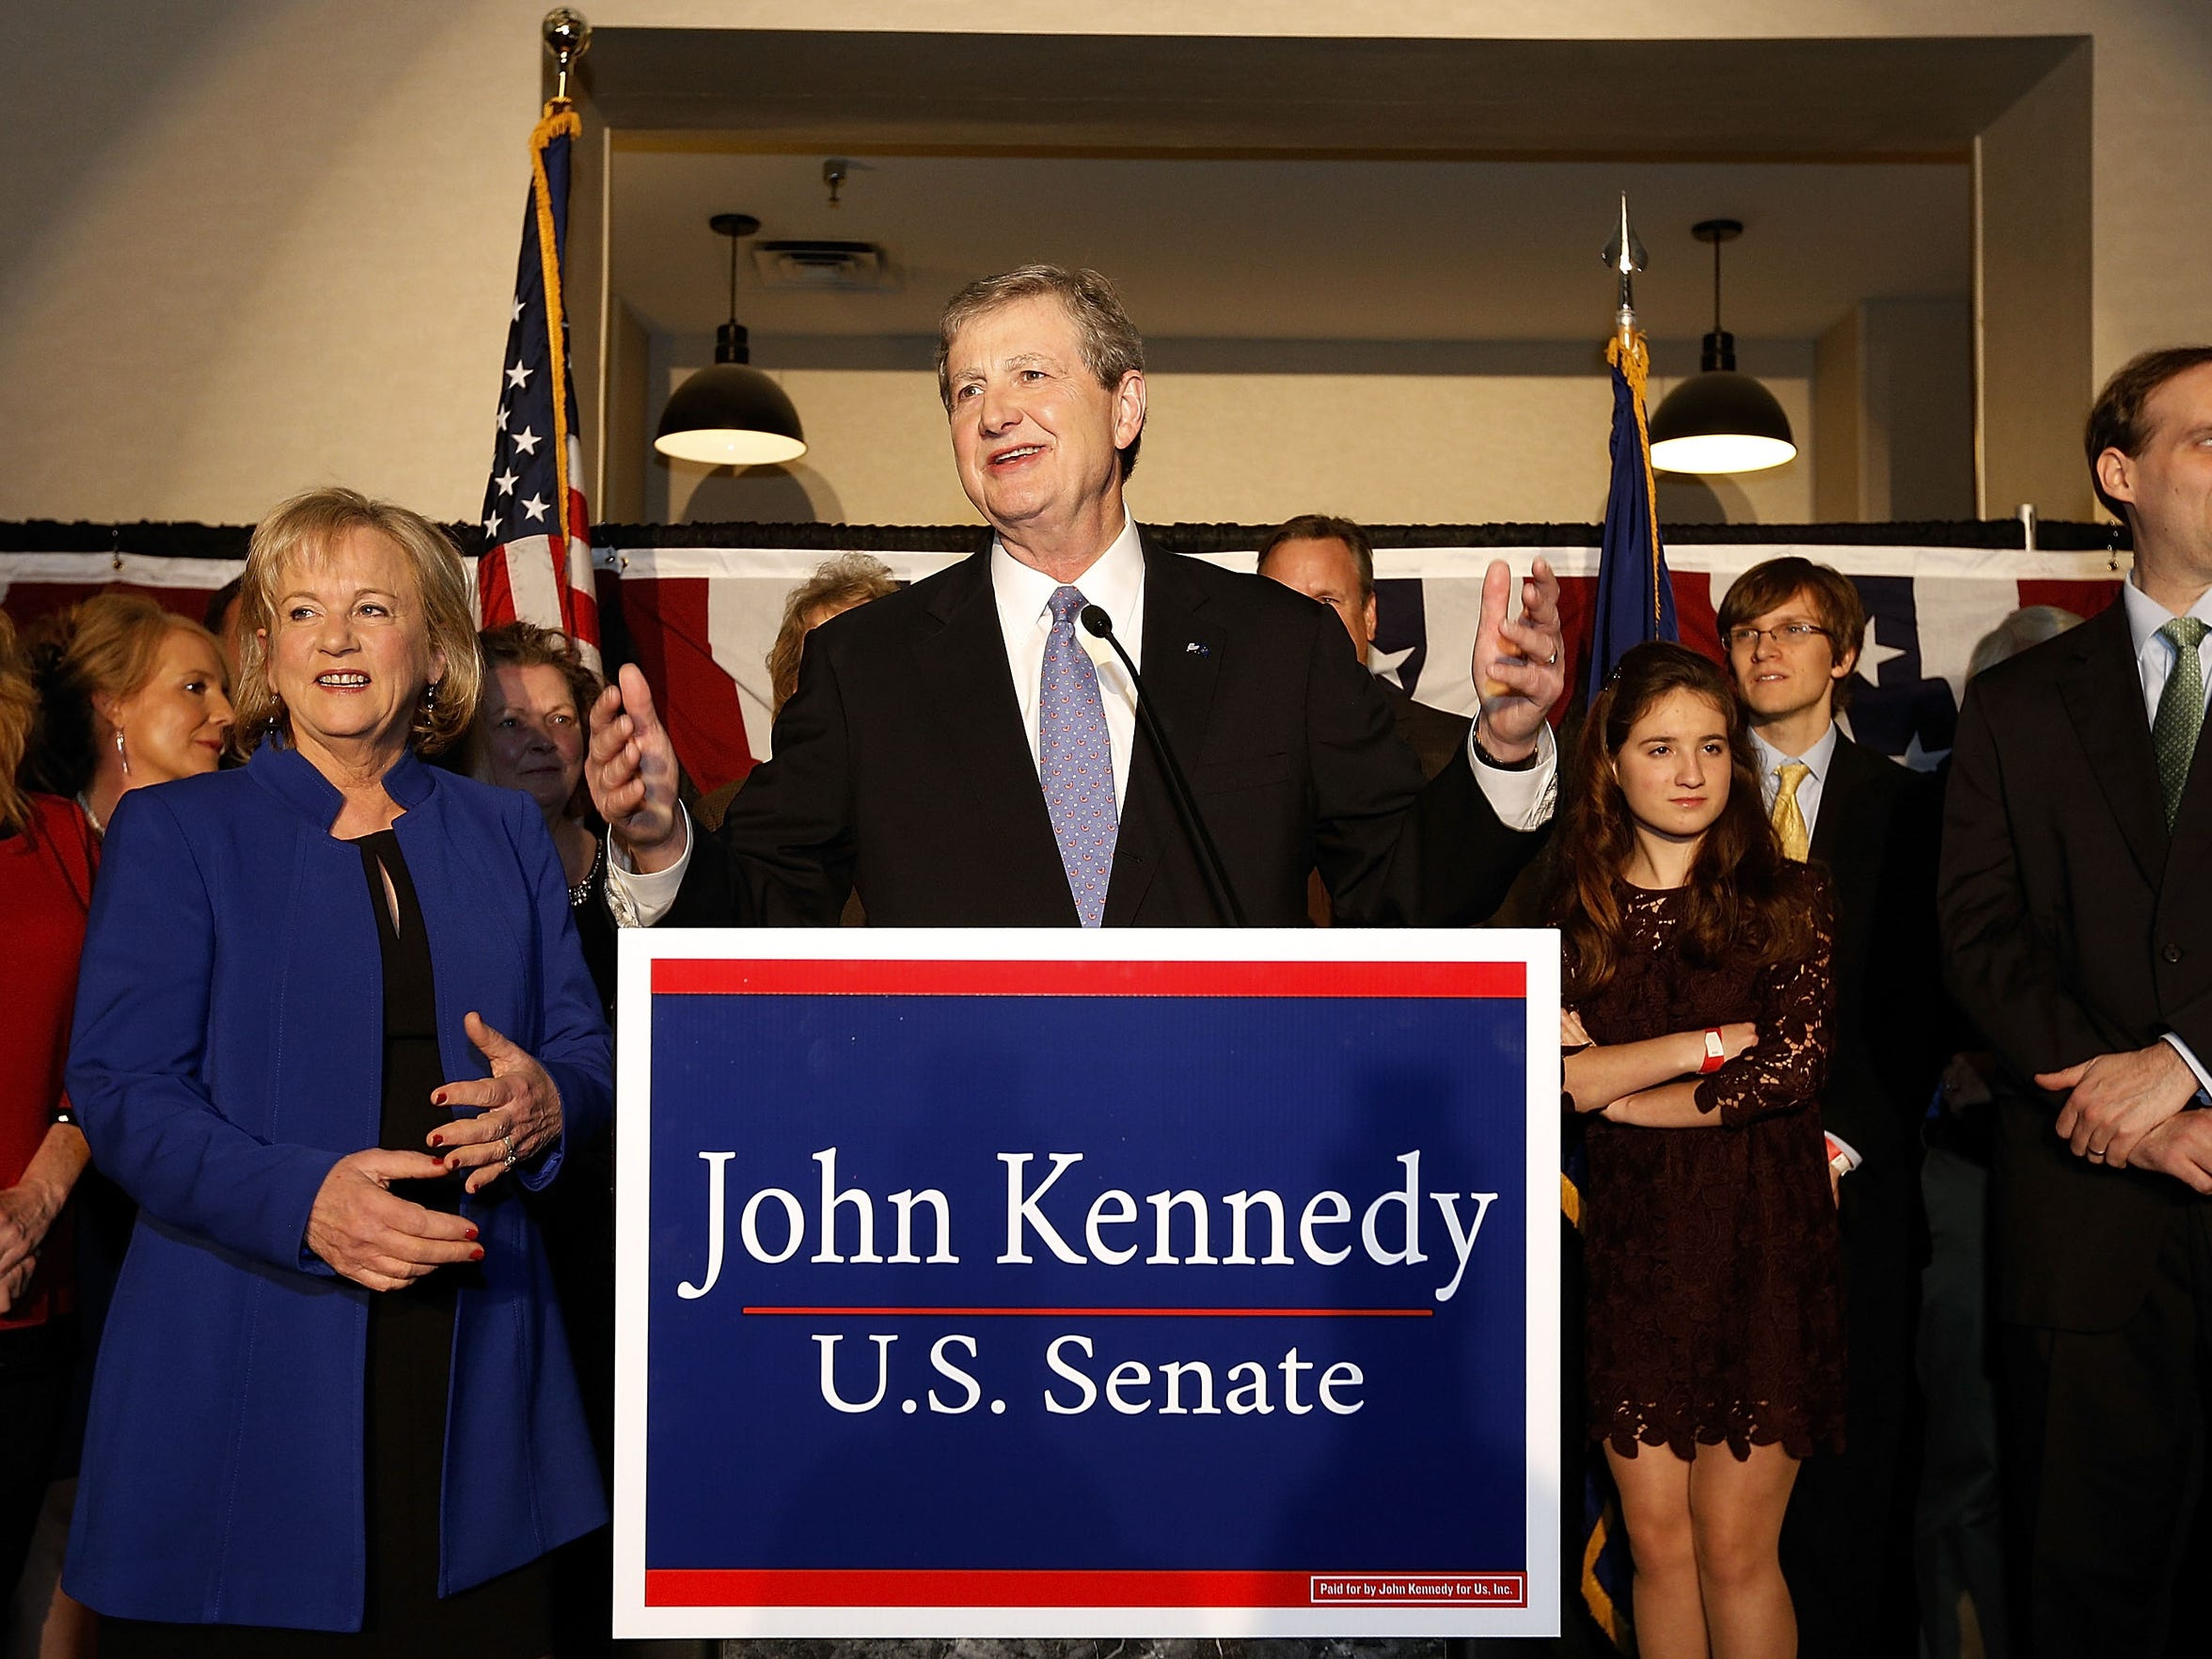 John Kennedy delivers a victory speech during an election party on Dec. 10, 2016, in Baton Rouge, La.